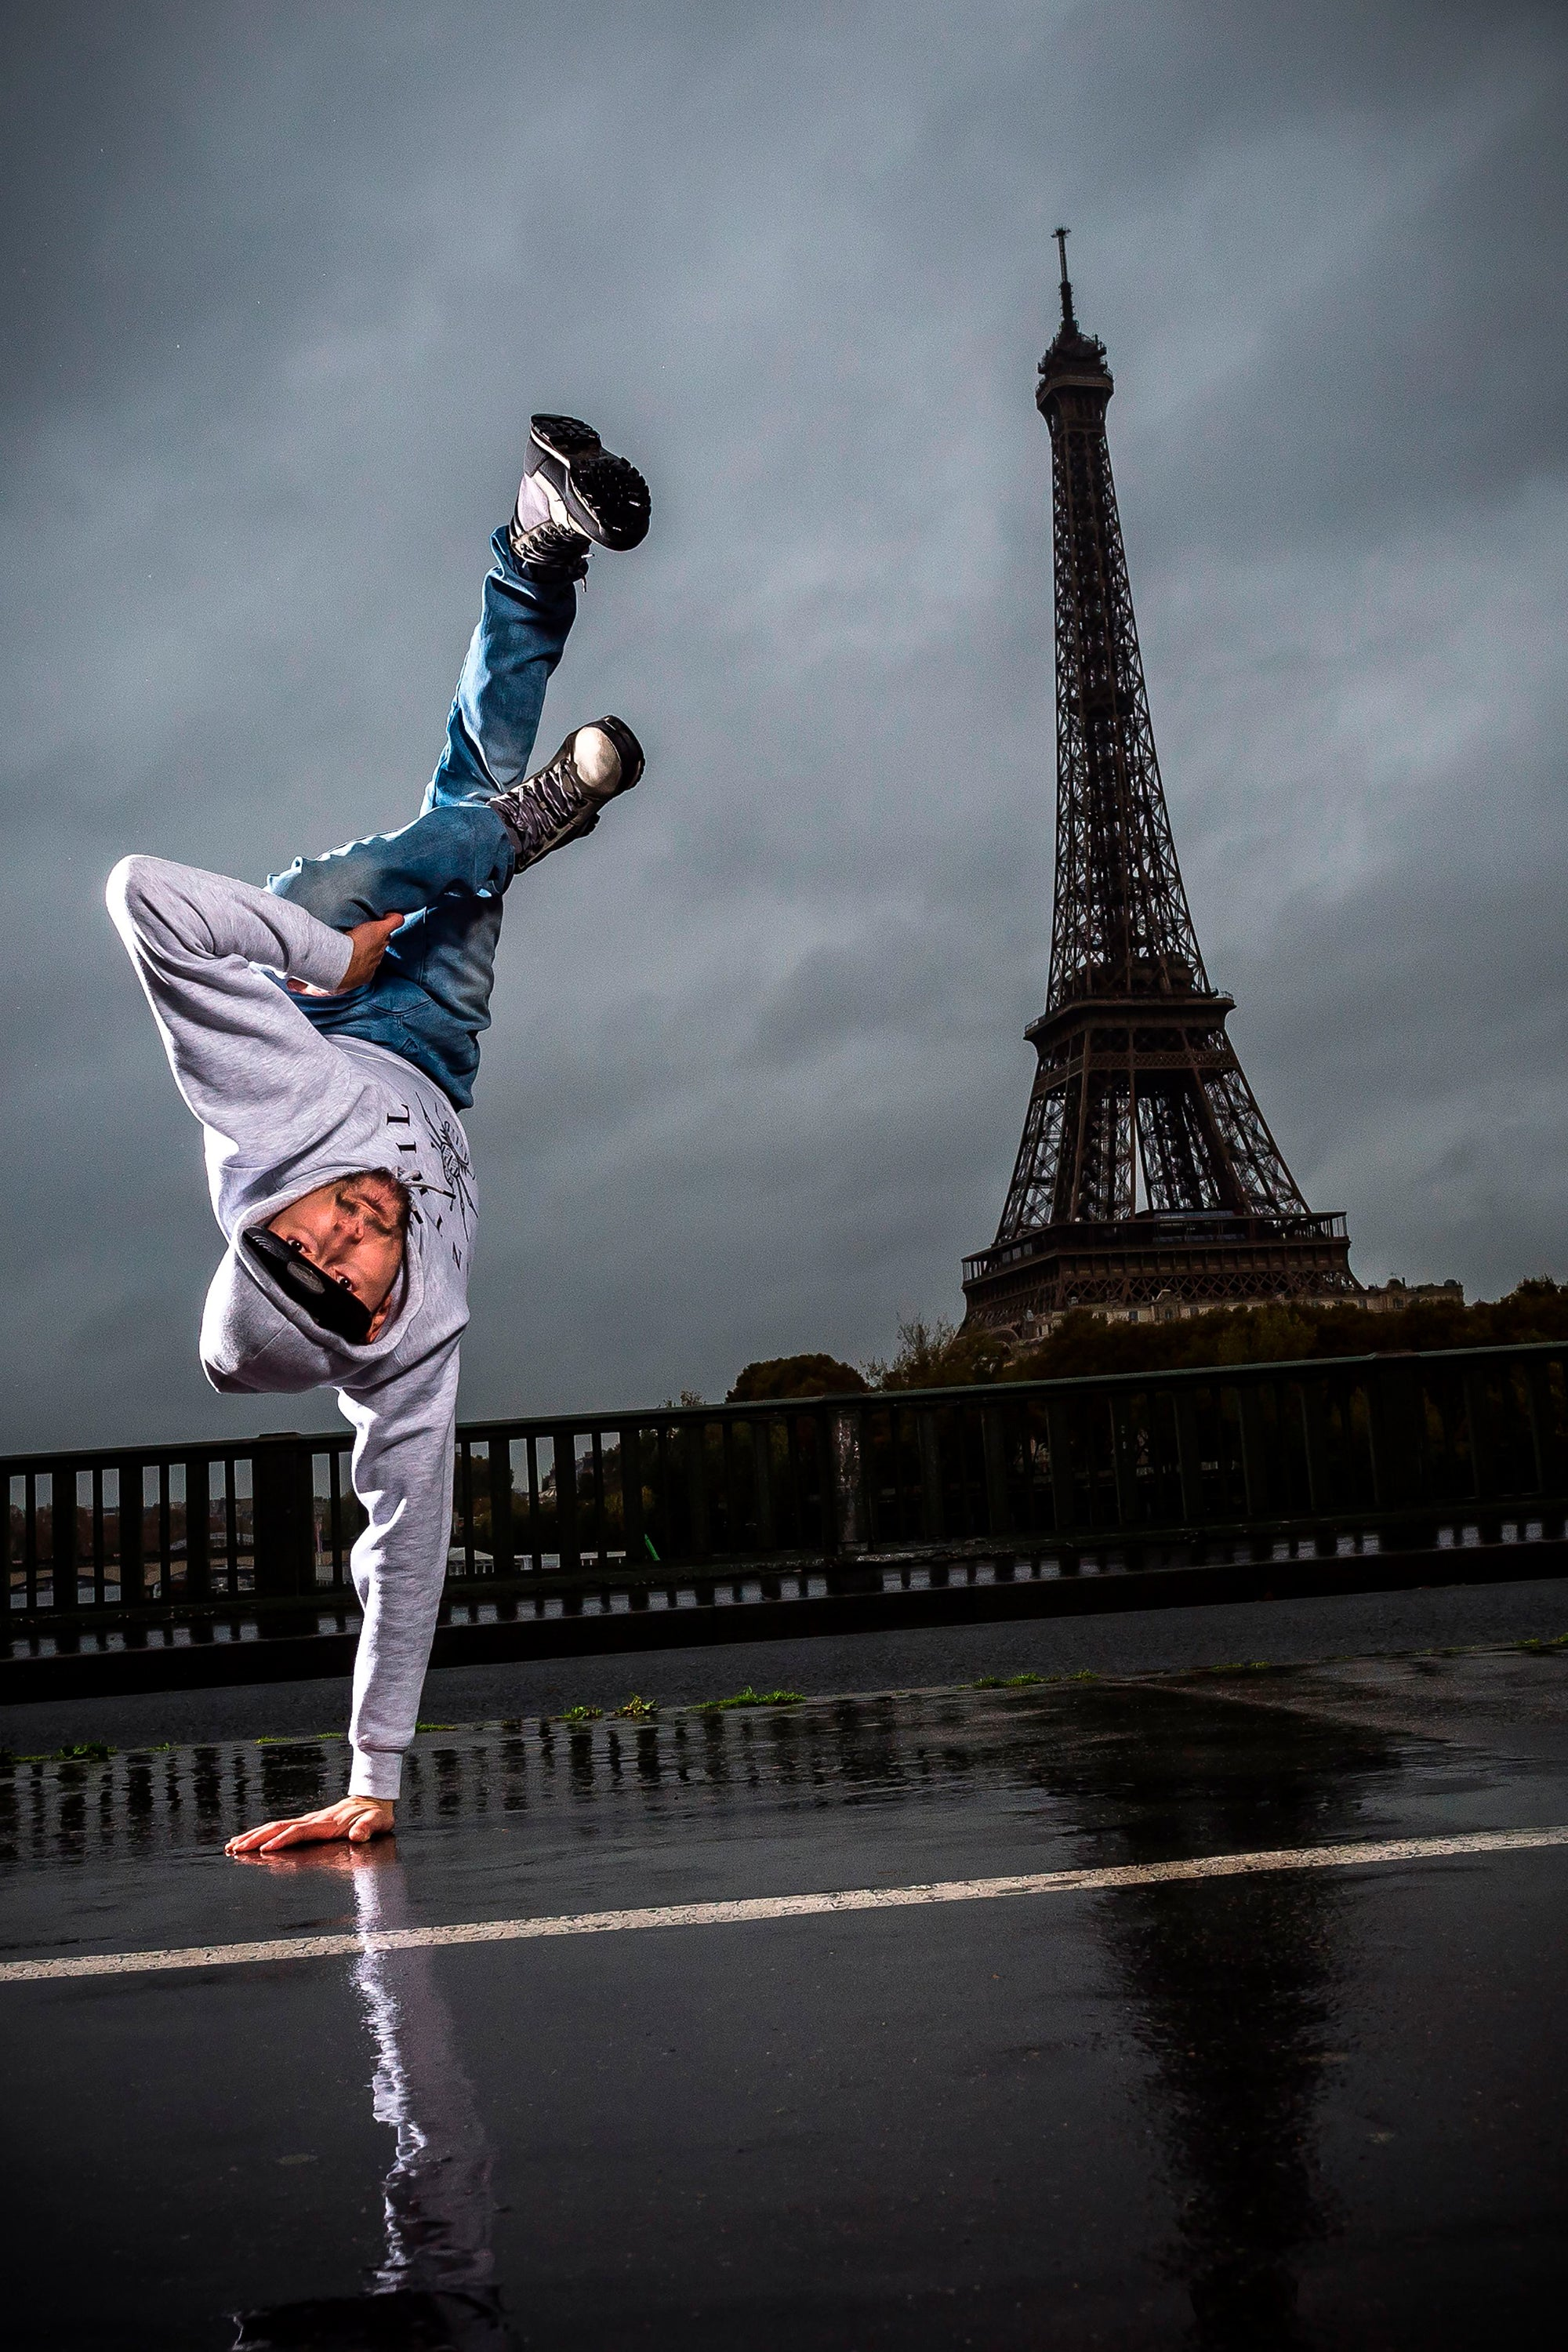 B-boy in front of the Eiffel Tower